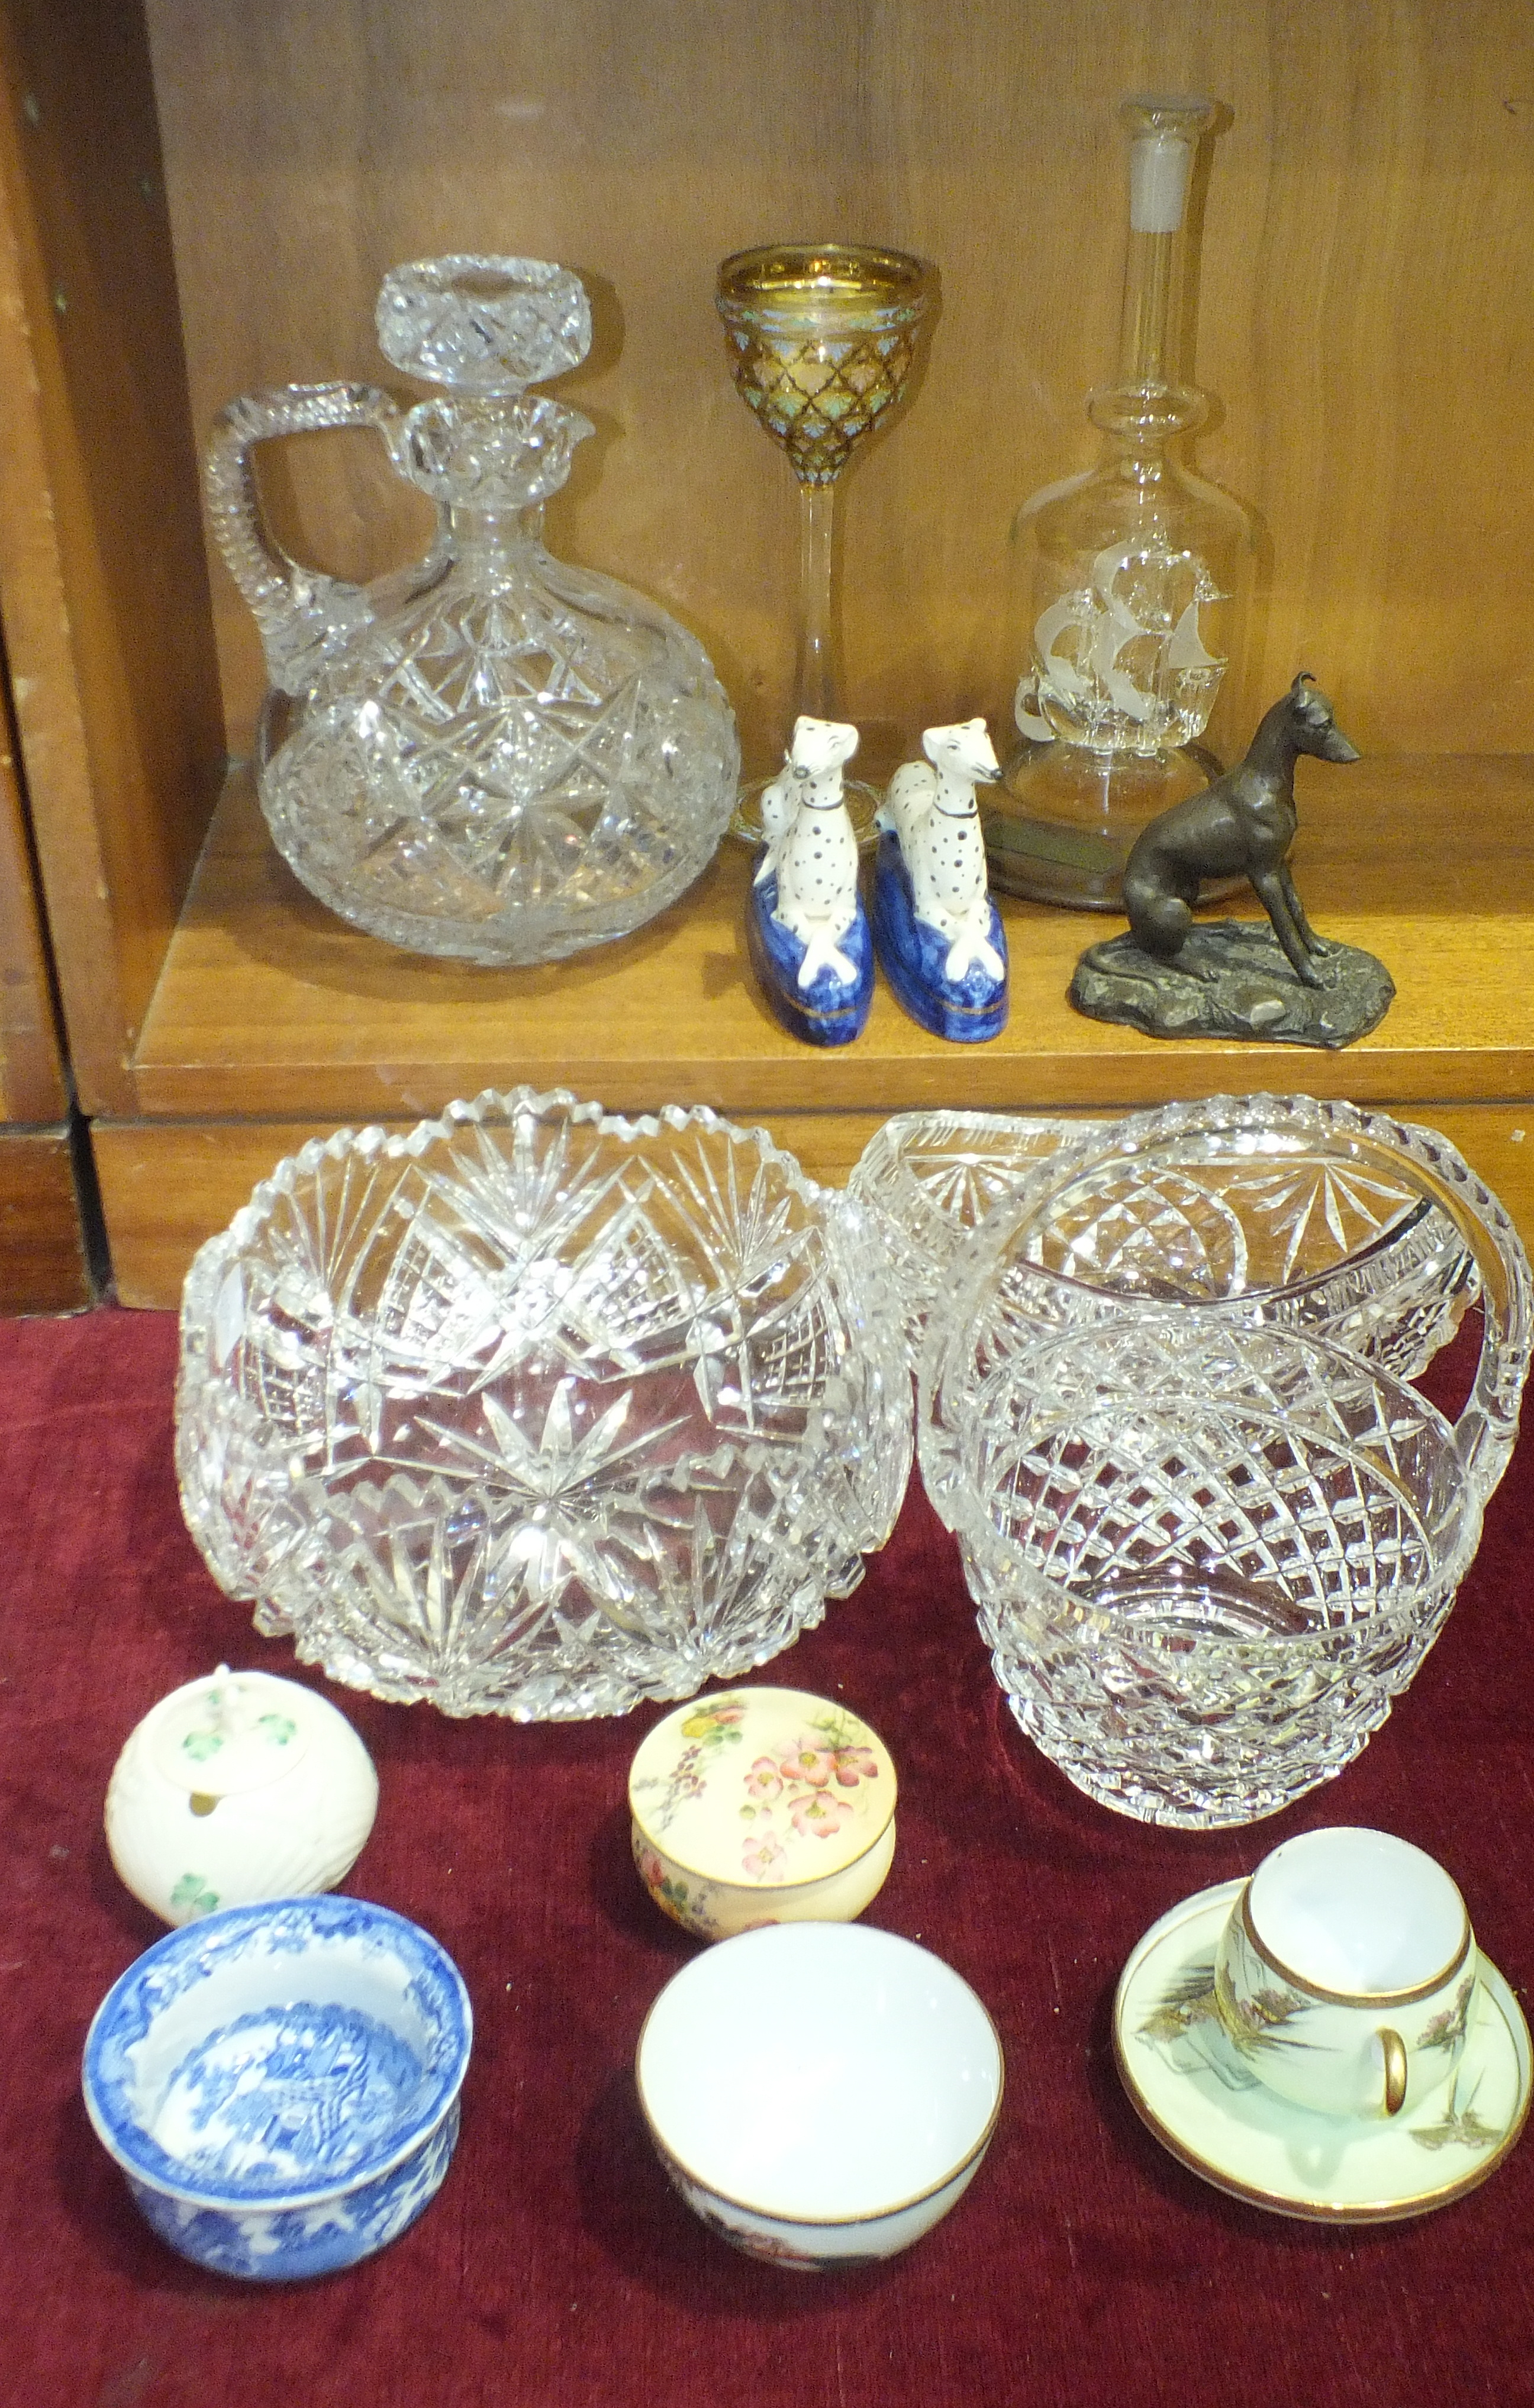 A Royal Worcester foliate-decorated blush pot and cover, a heavy cut-glass decanter, bowl, other